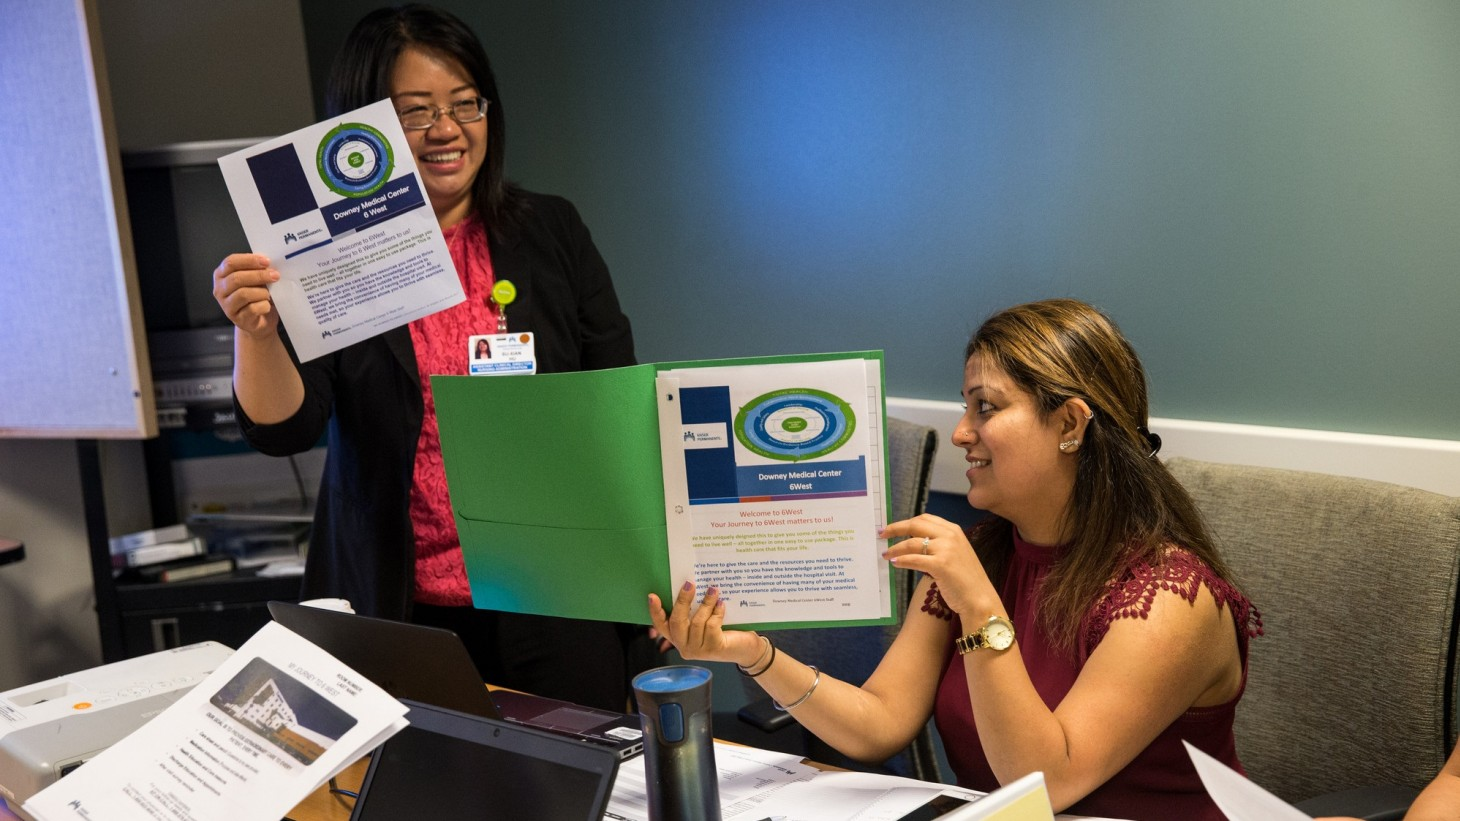 two women at a meeting table, holding up documents